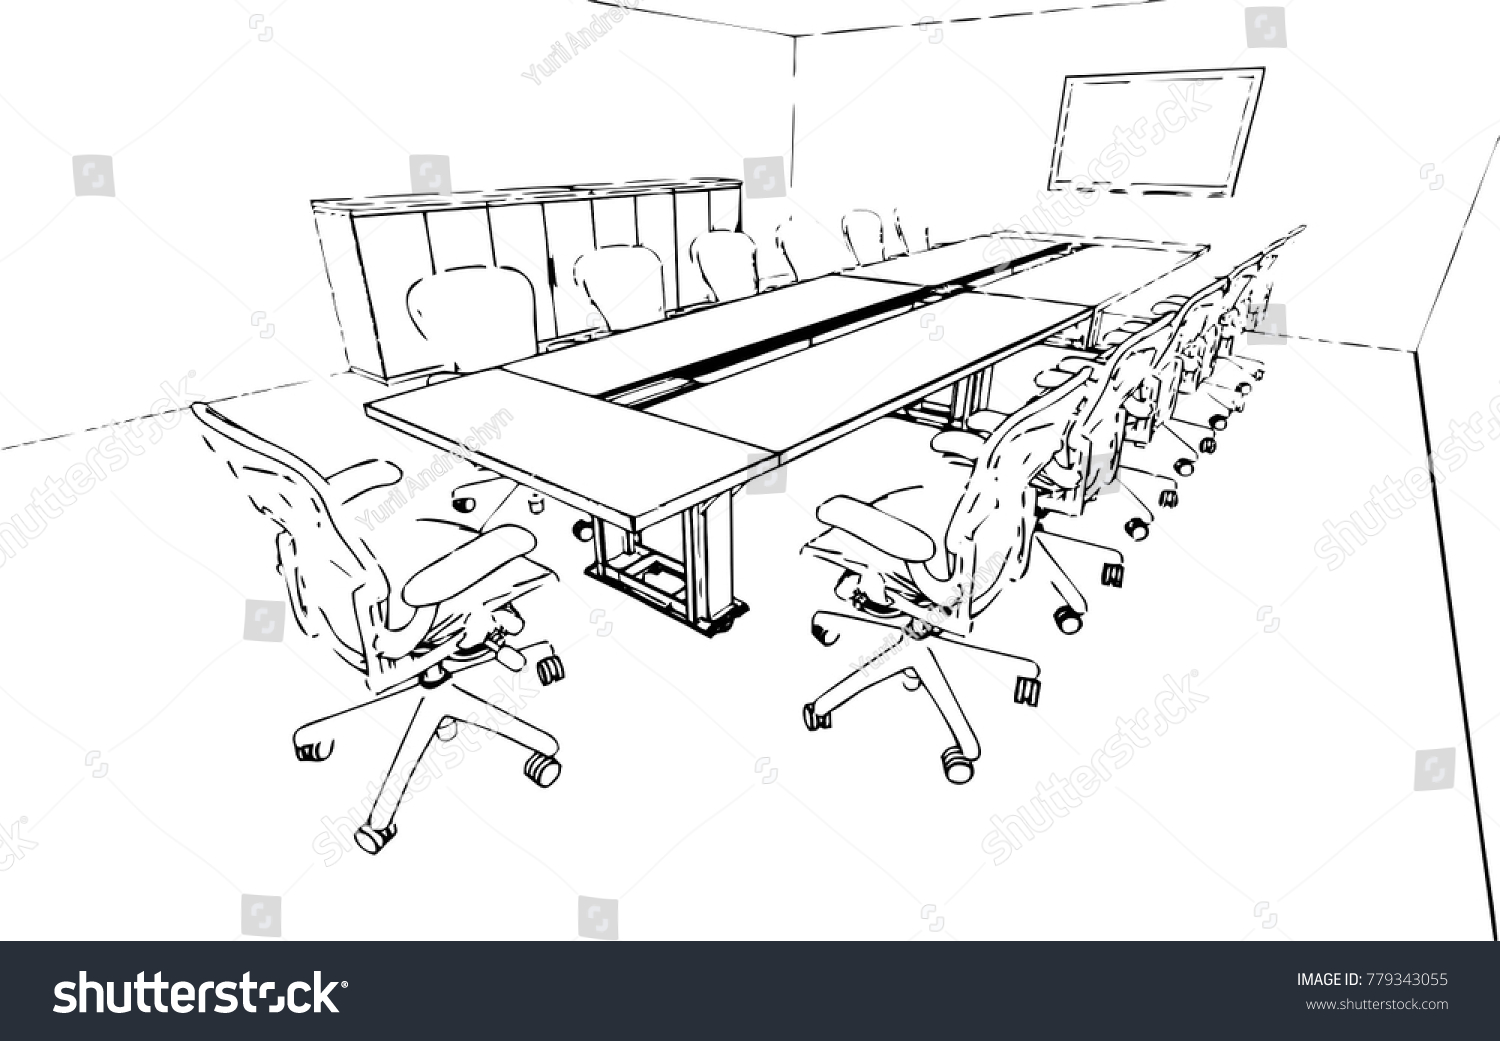 hight resolution of meeting room sketch vector